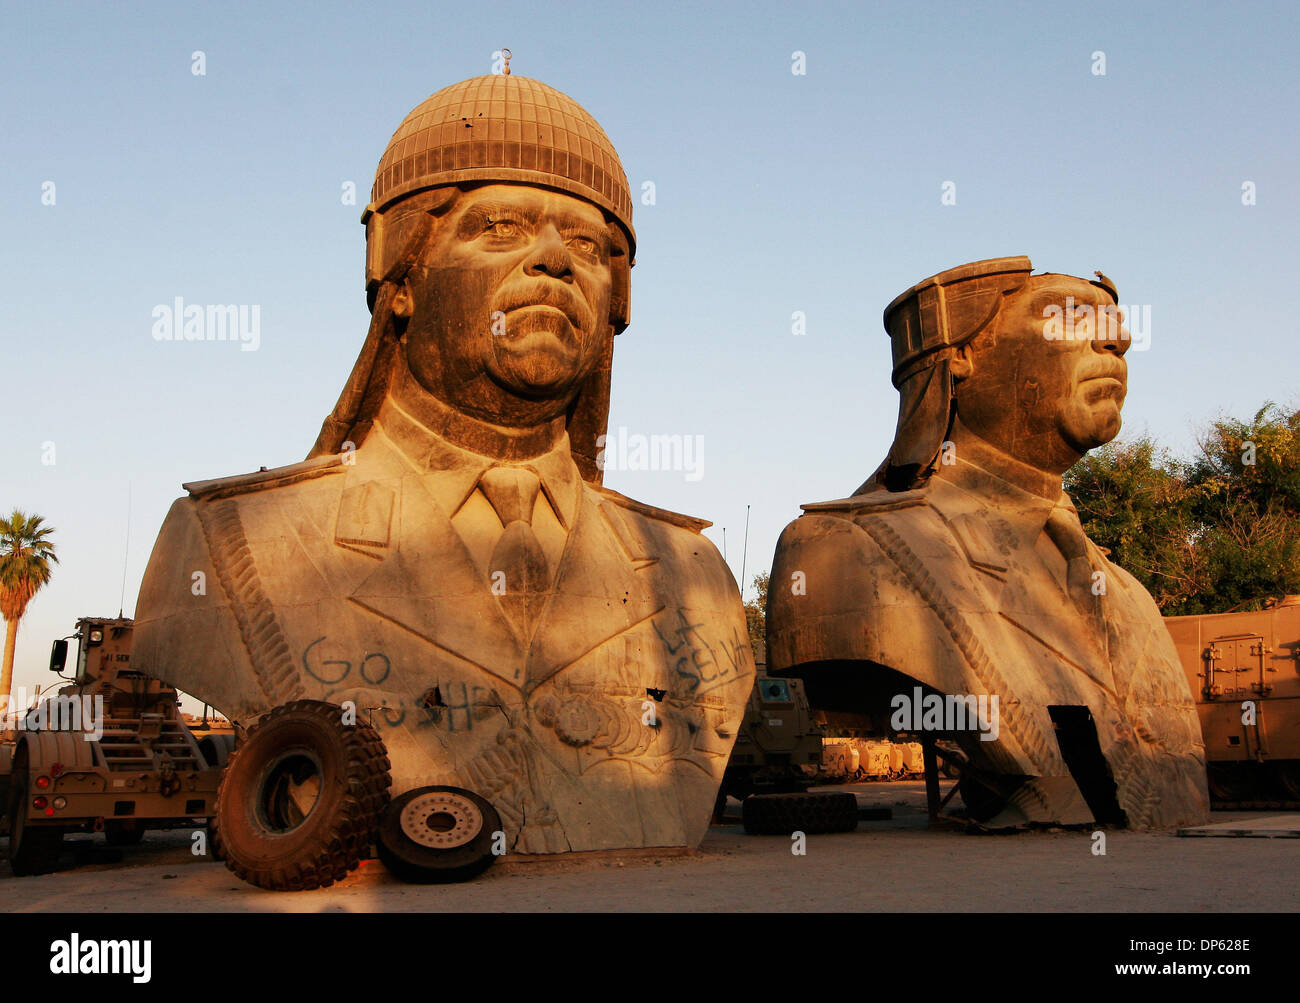 Juin 04, 2006 ; BAGDAD, IRAQ, a renversé les statues de 20 pieds de Saddam Hussein, prises à partir de l'un des palais de l'ancien président irakien, s'asseoir dans un lot de stockage dans la zone verte de Bagdad le 4 juin 2006. Crédit obligatoire : Photo par David Honl/ZUMA Press. (©) Copyright 2006 by David Honl Photo Stock